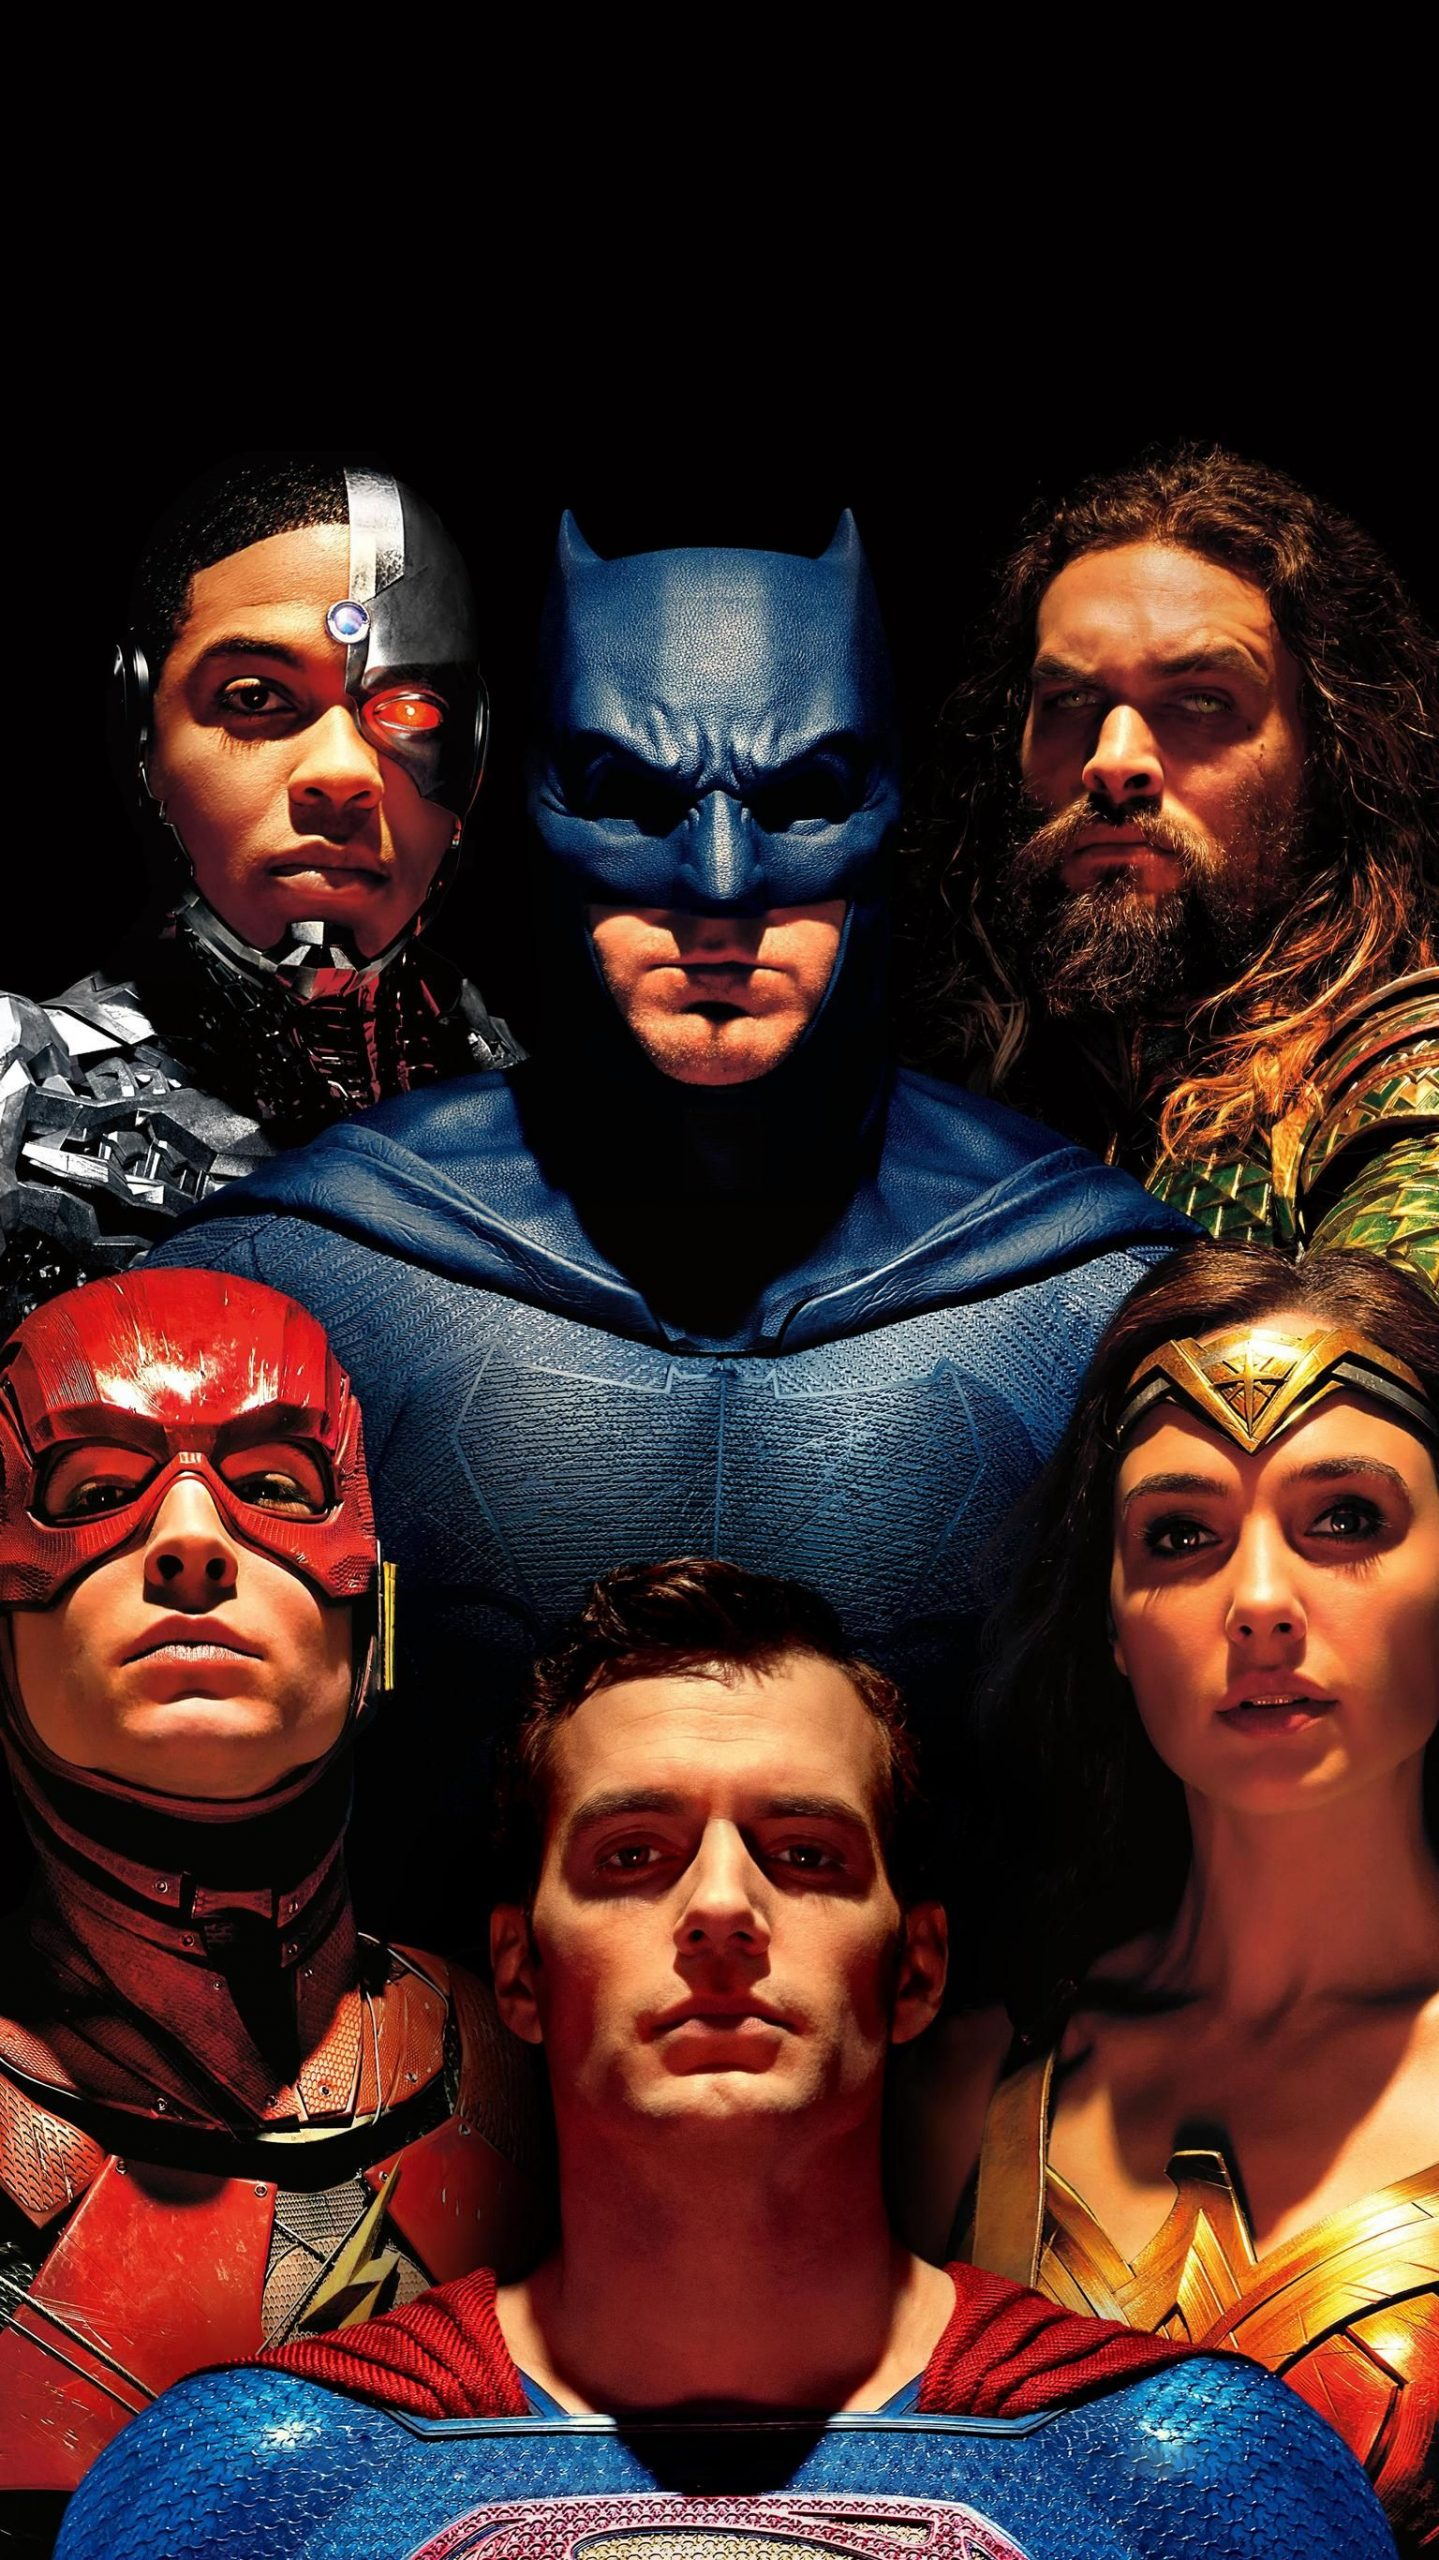 Park Art My WordPress Blog_Zack Snyders Justice League Full Movie Online Free No Sign Up